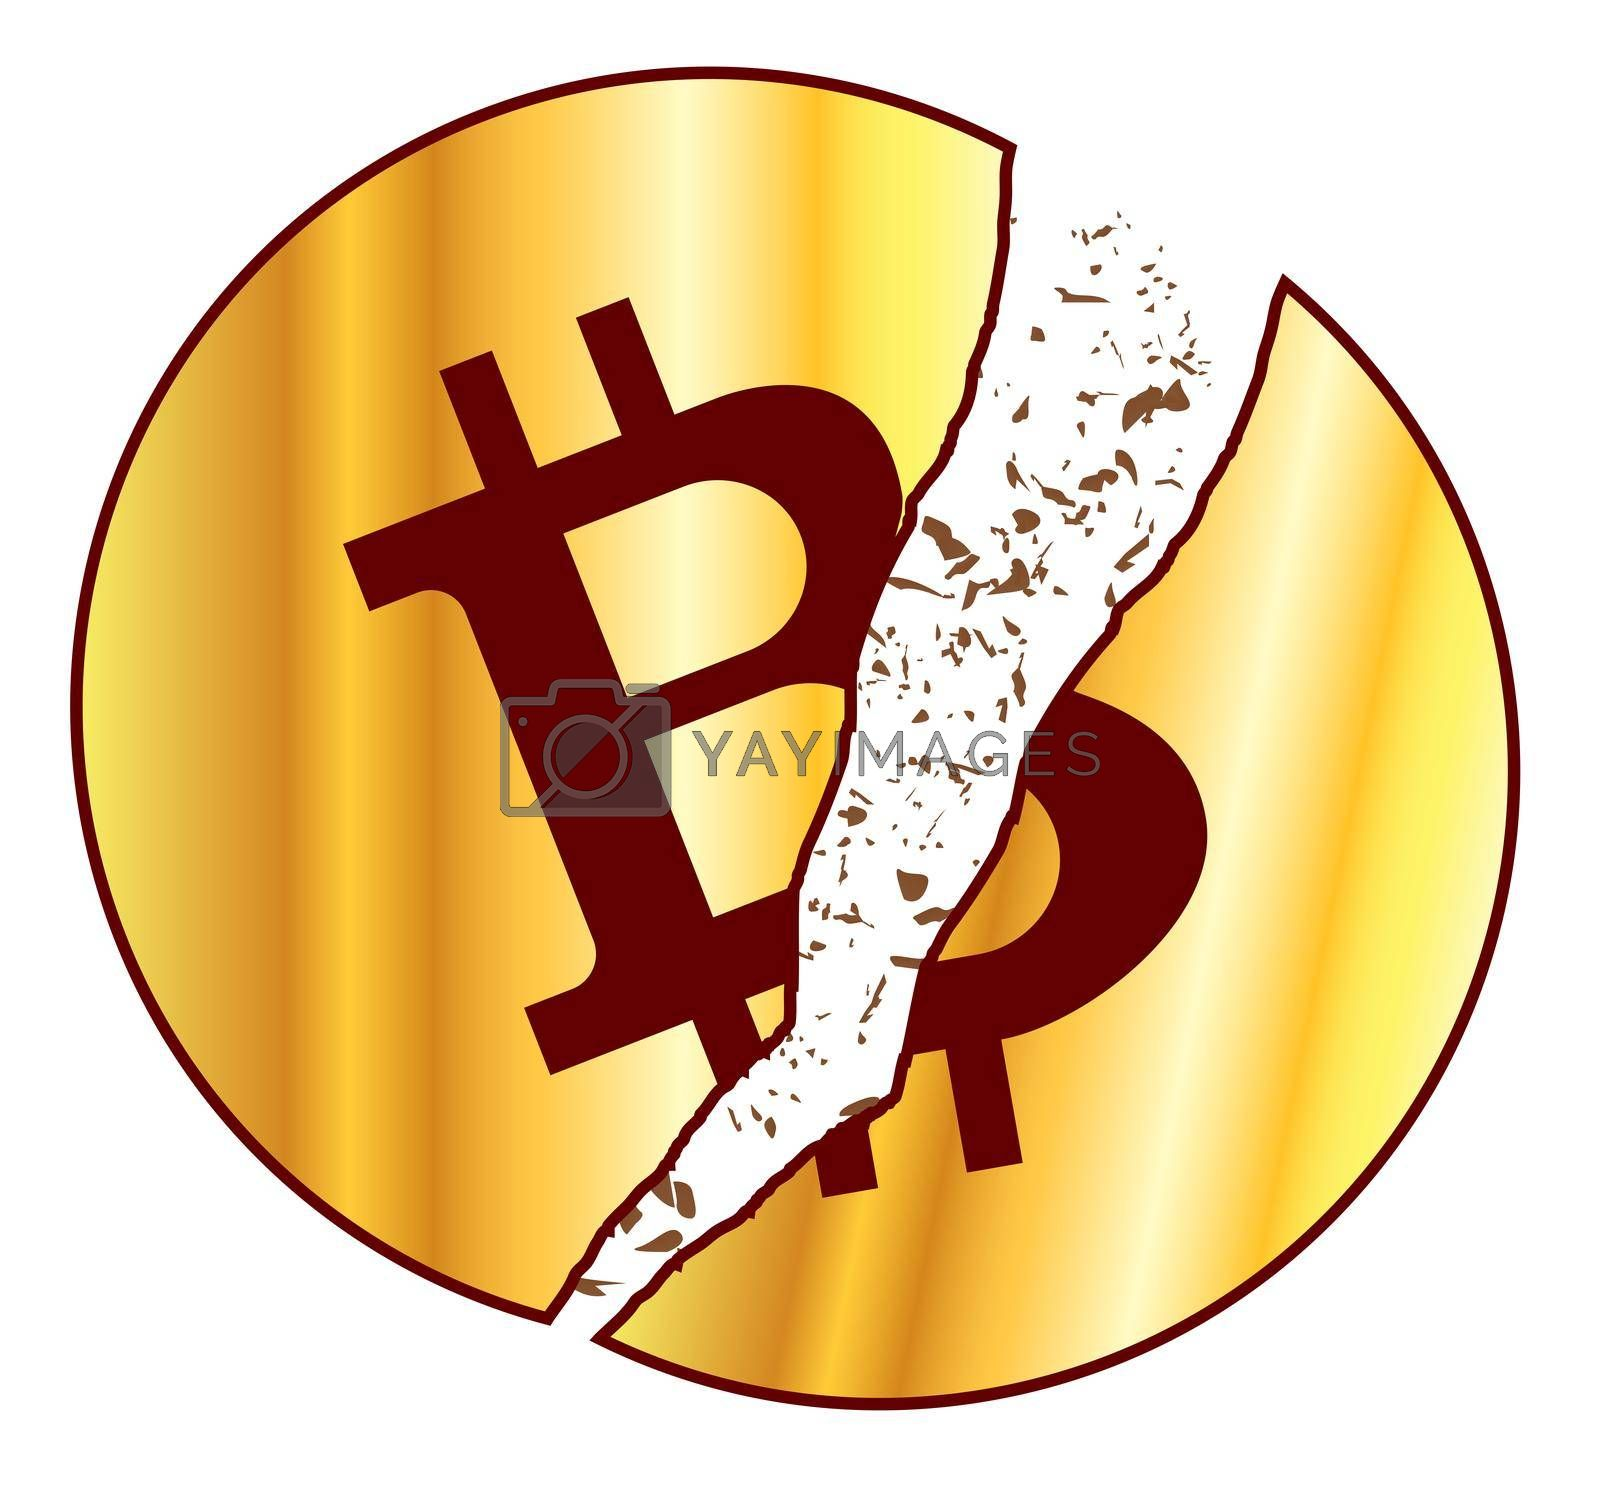 Golden bitcoin with symbol over a white background with broken pieces